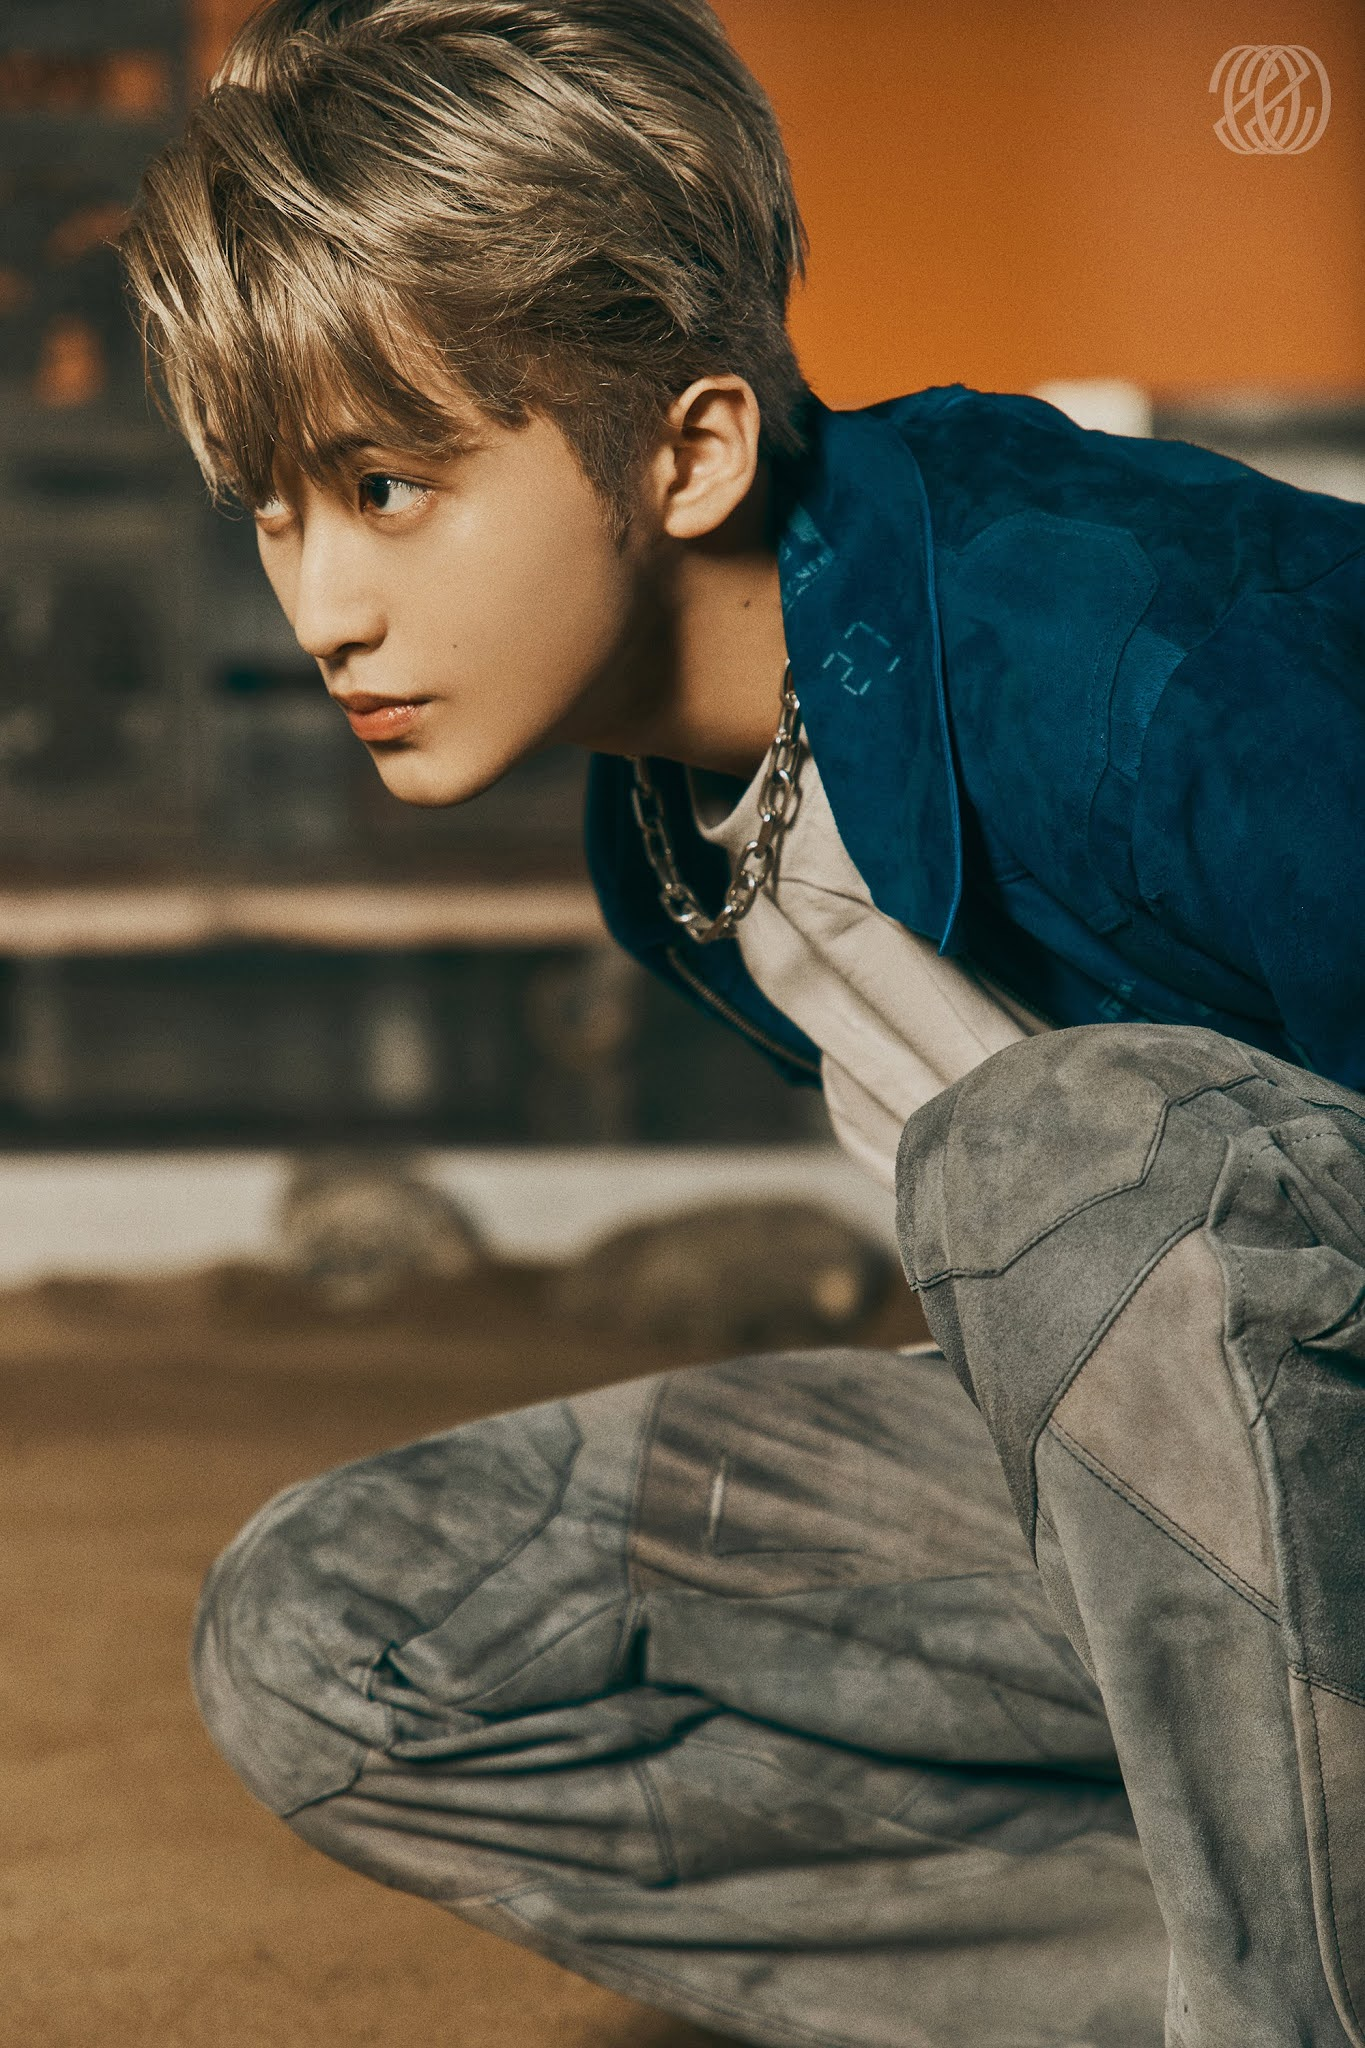 NCT 2020 Again Releases Individual Teaser Ahead of Comeback With 'RESONANCE Pt.1